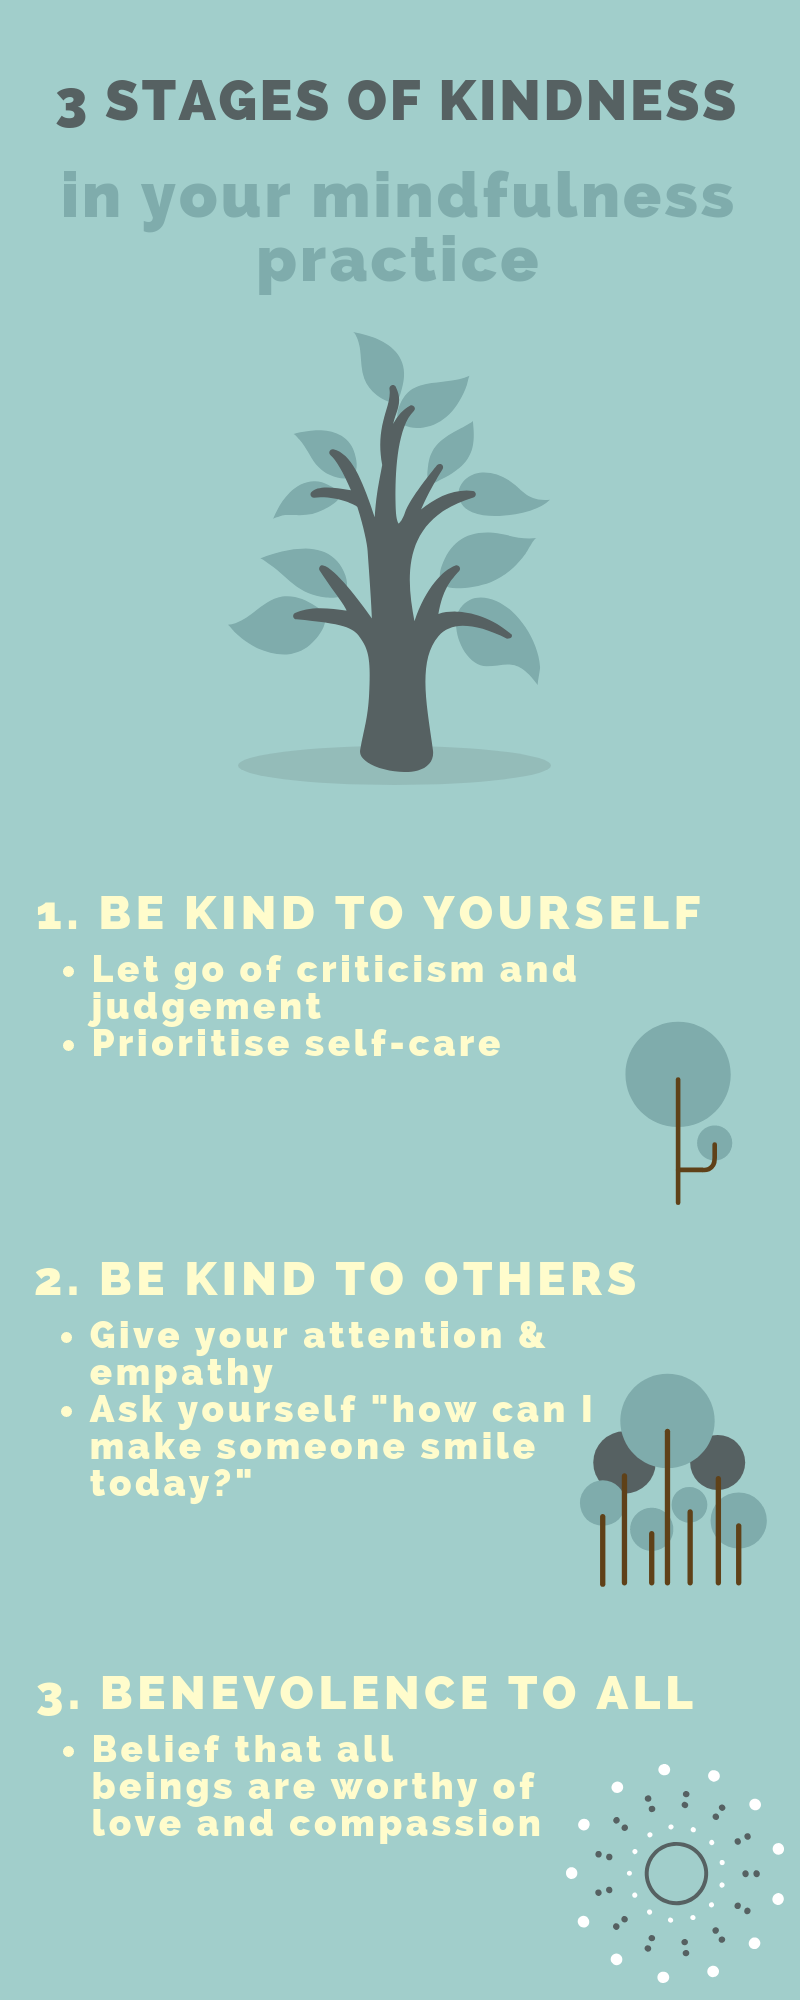 3 stages of kindness mindfulness